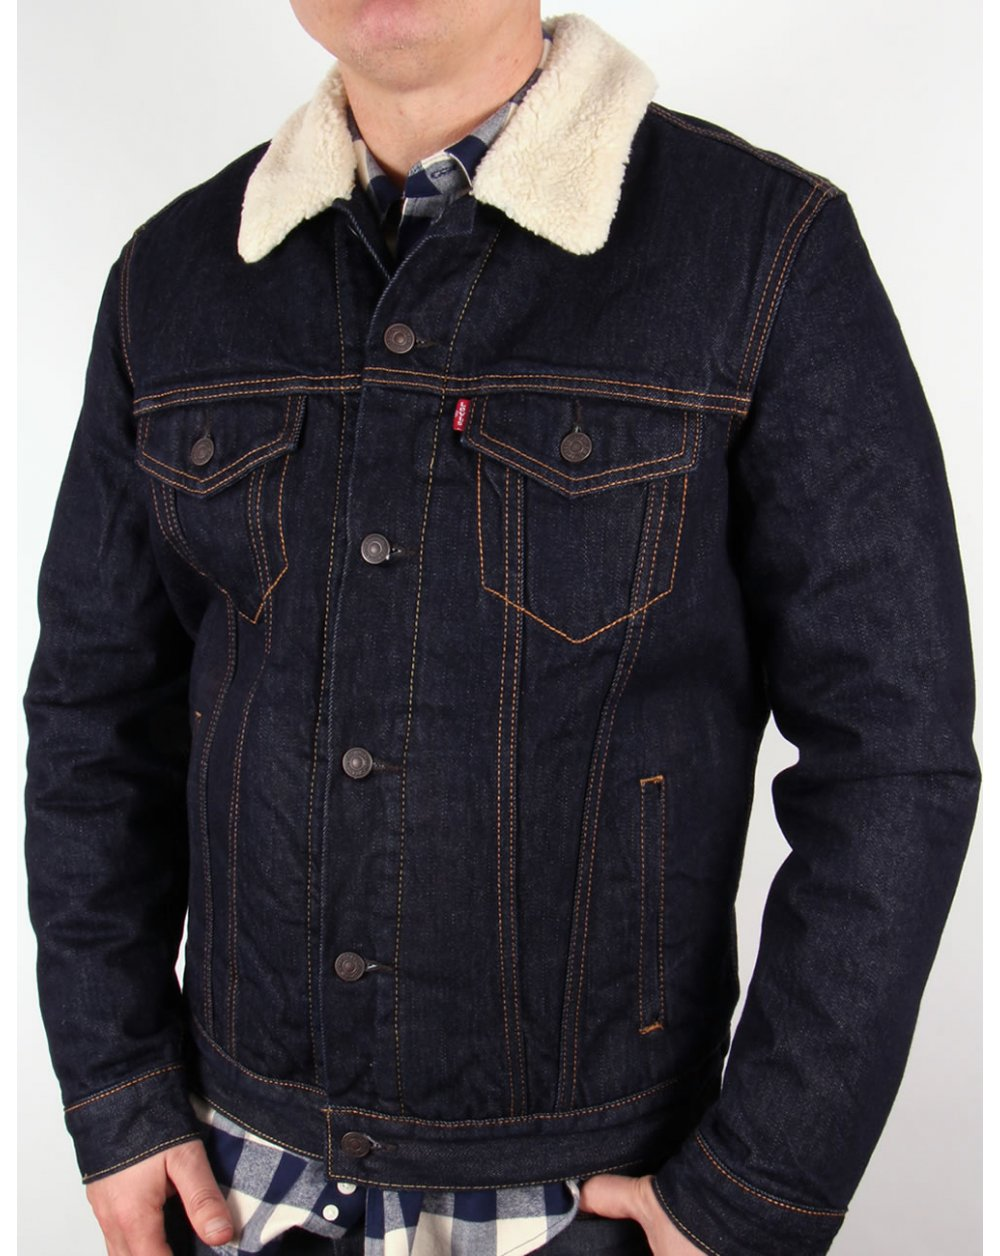 Levis Sherpa Trucker Jacket Dark Denim,mens,jeans,coat